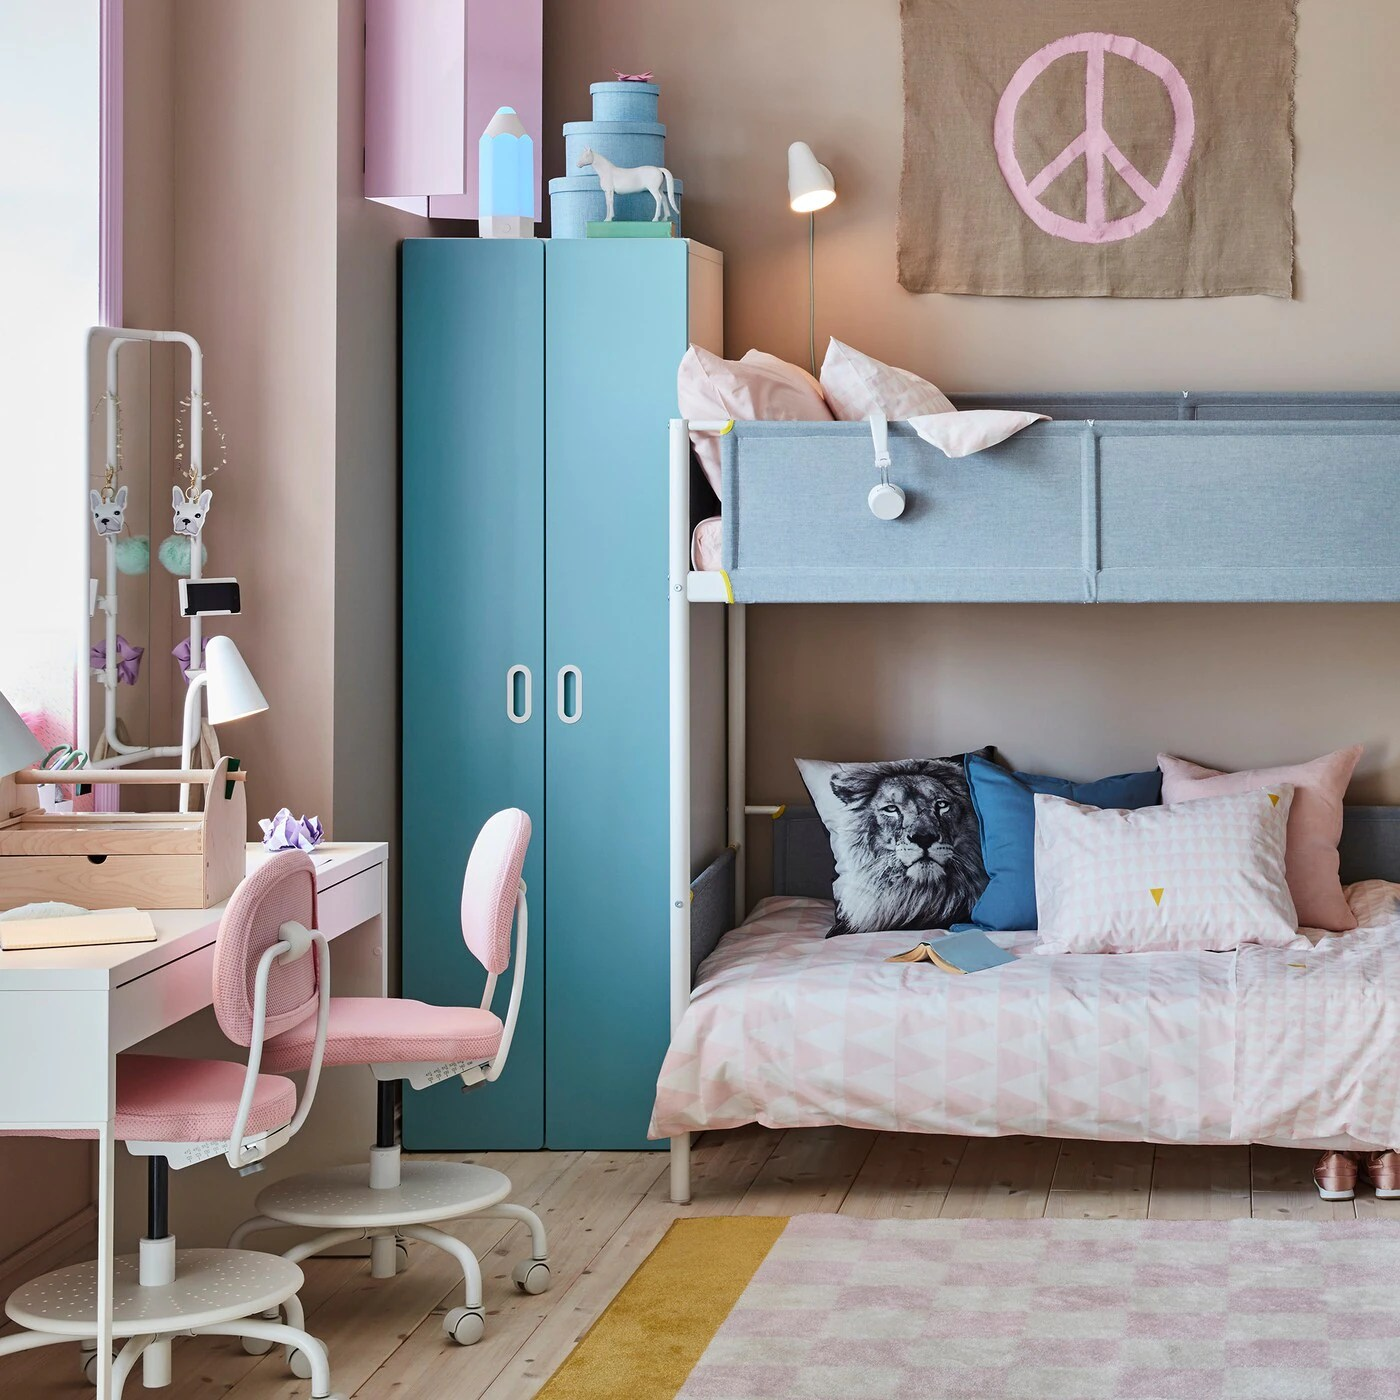 Ikea Wardrobe Tidy Kids Bedroom Ideas Kids Bedroom Inspiration Ikea